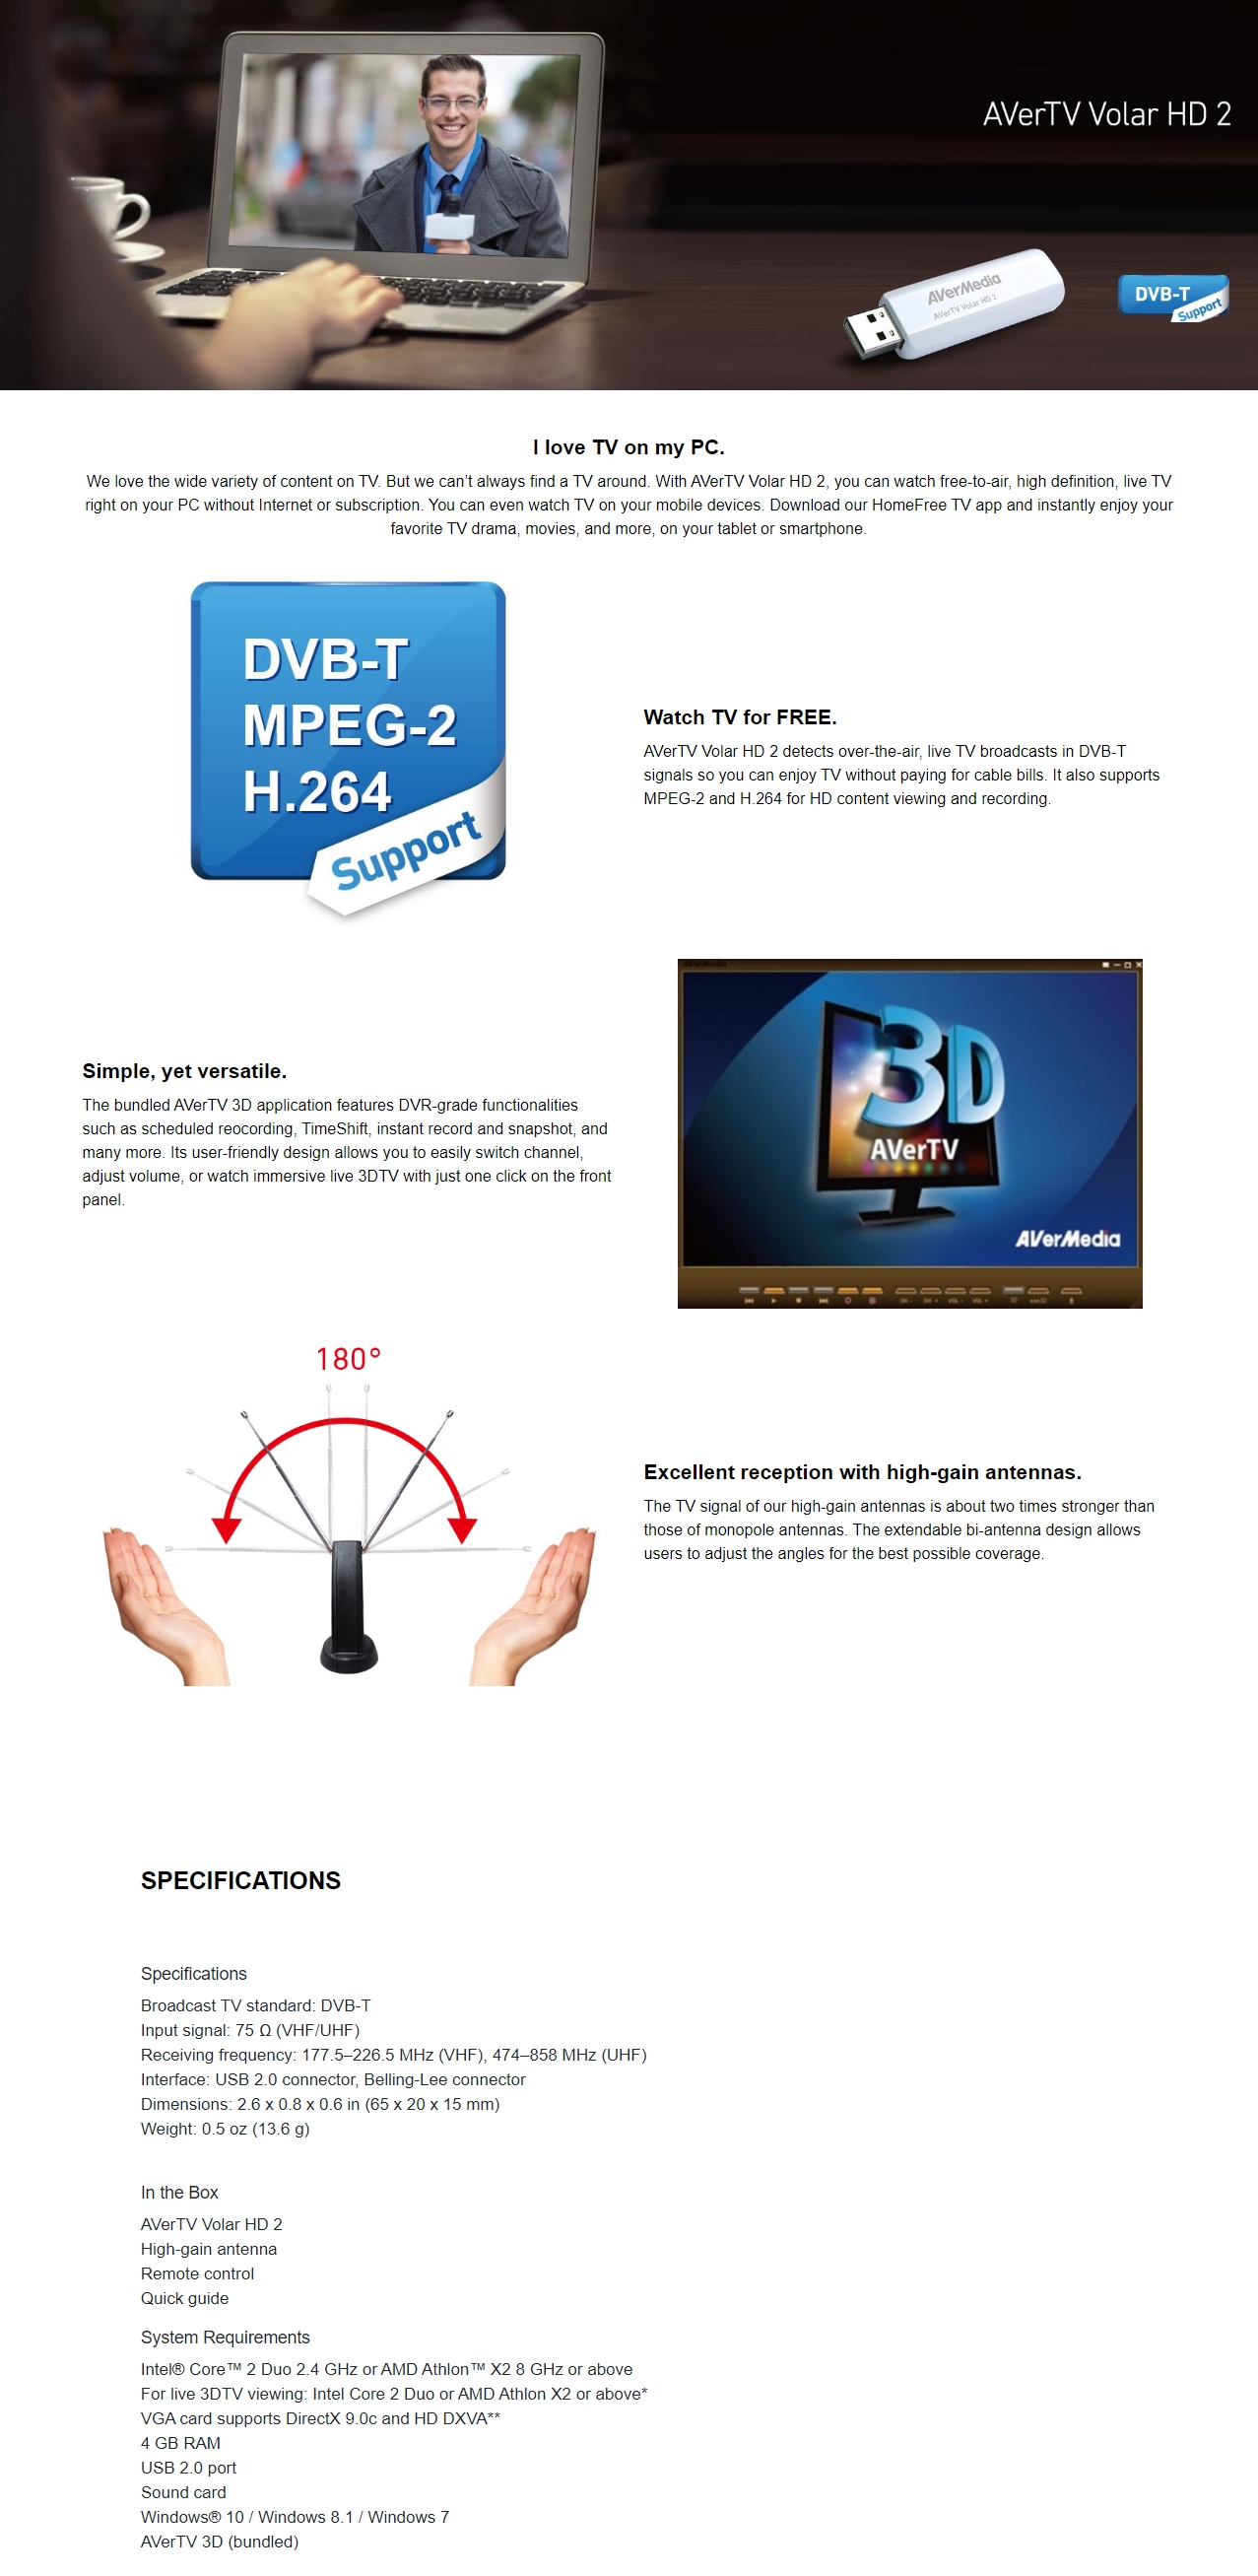 A large marketing image providing additional information about the product AVerMedia TD110 AverTV Volar HD 2 USB TV Tuner - Additional alt info not provided